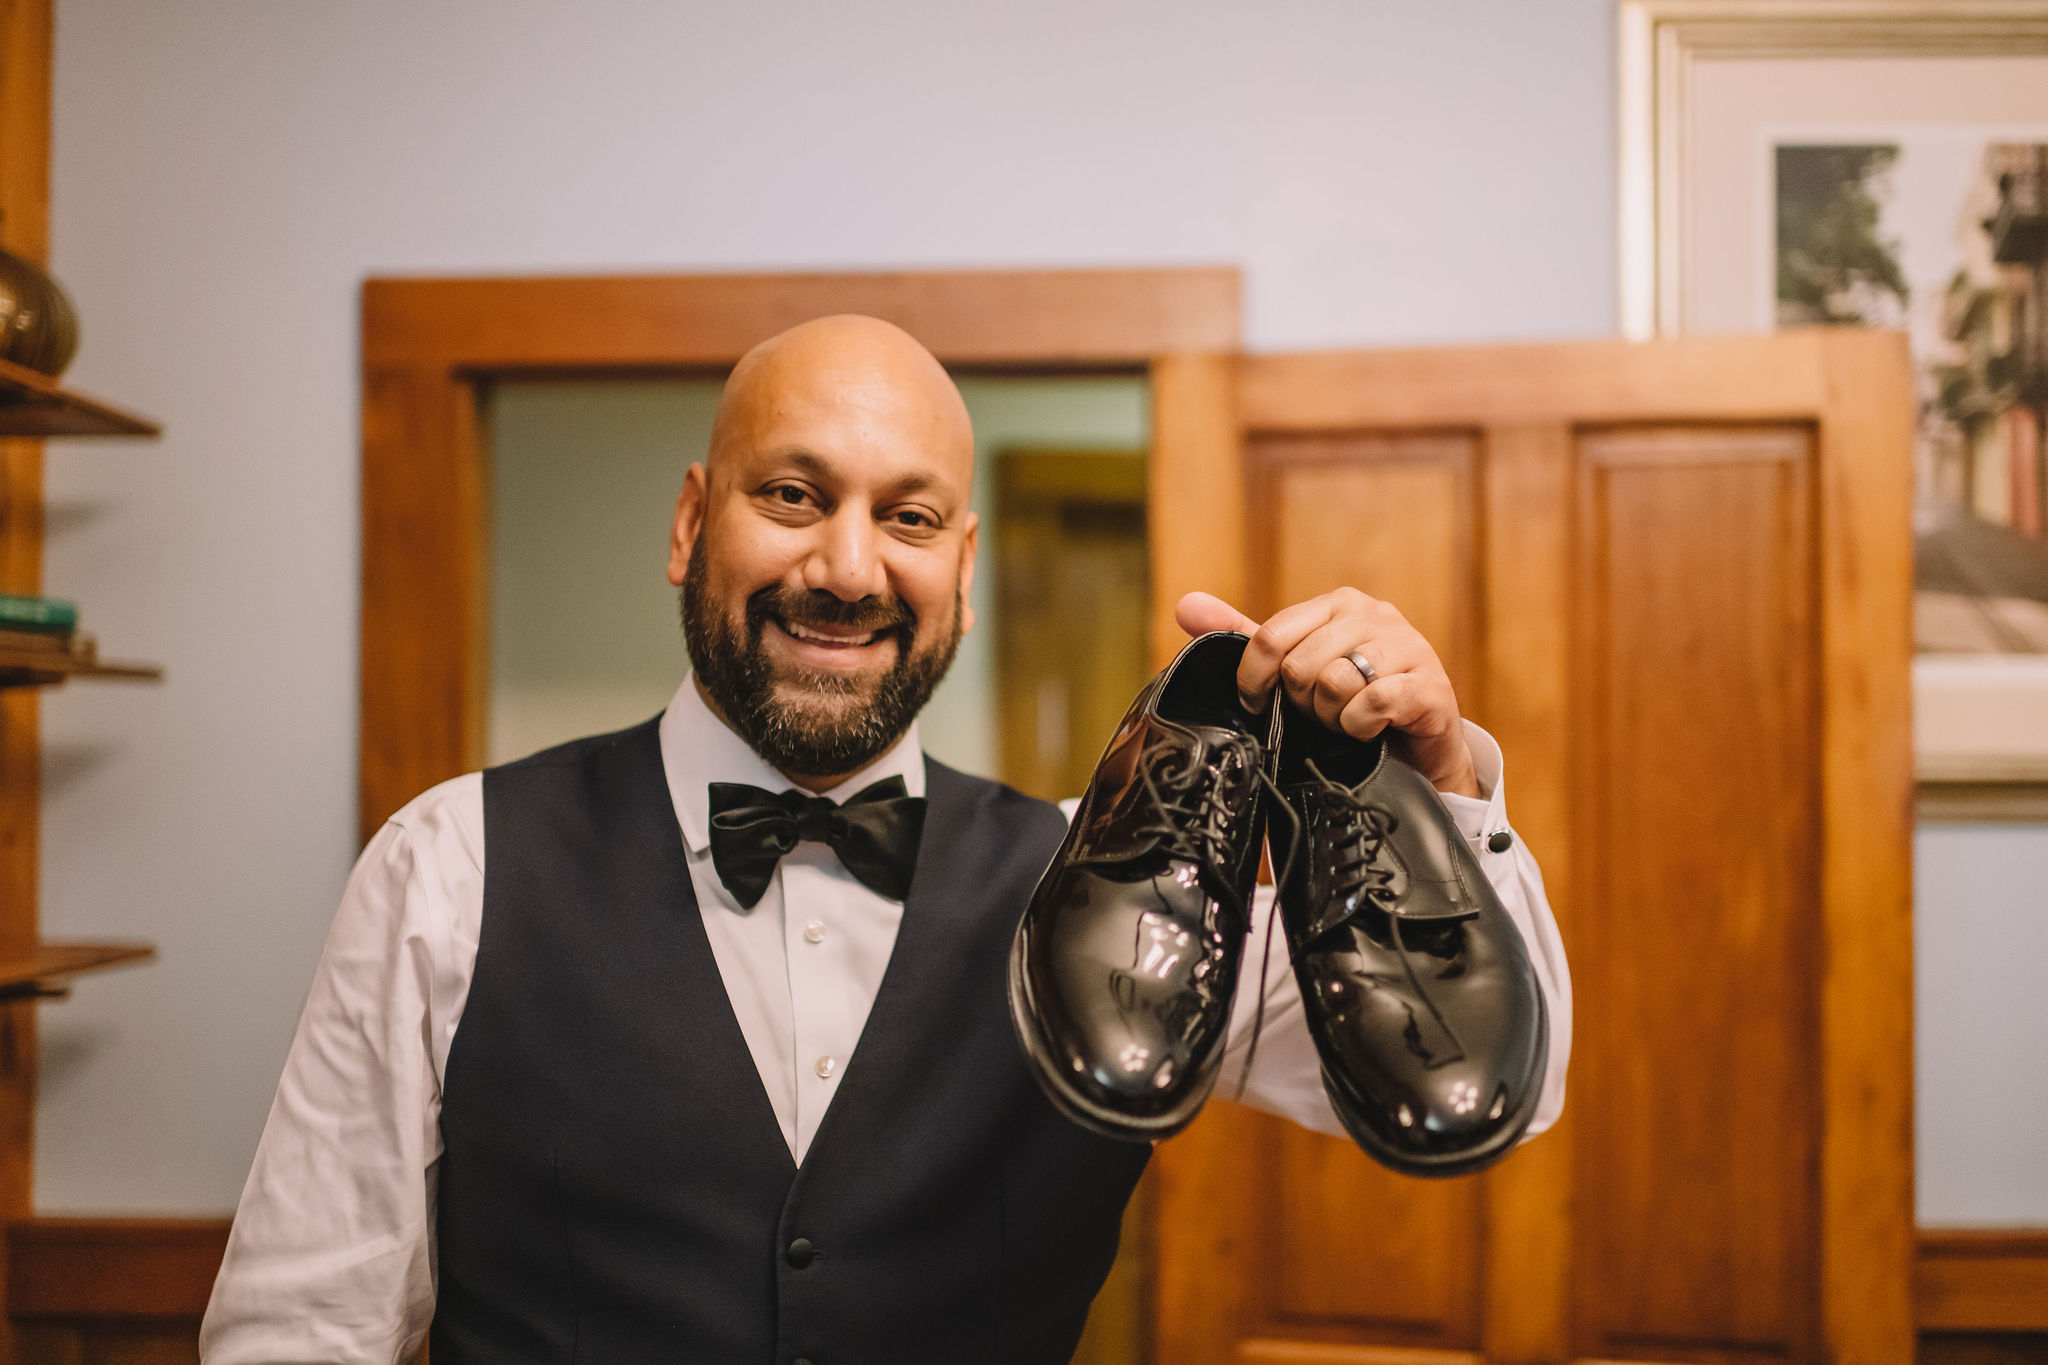 Jimmy finally got his shoes back on the wedding day!